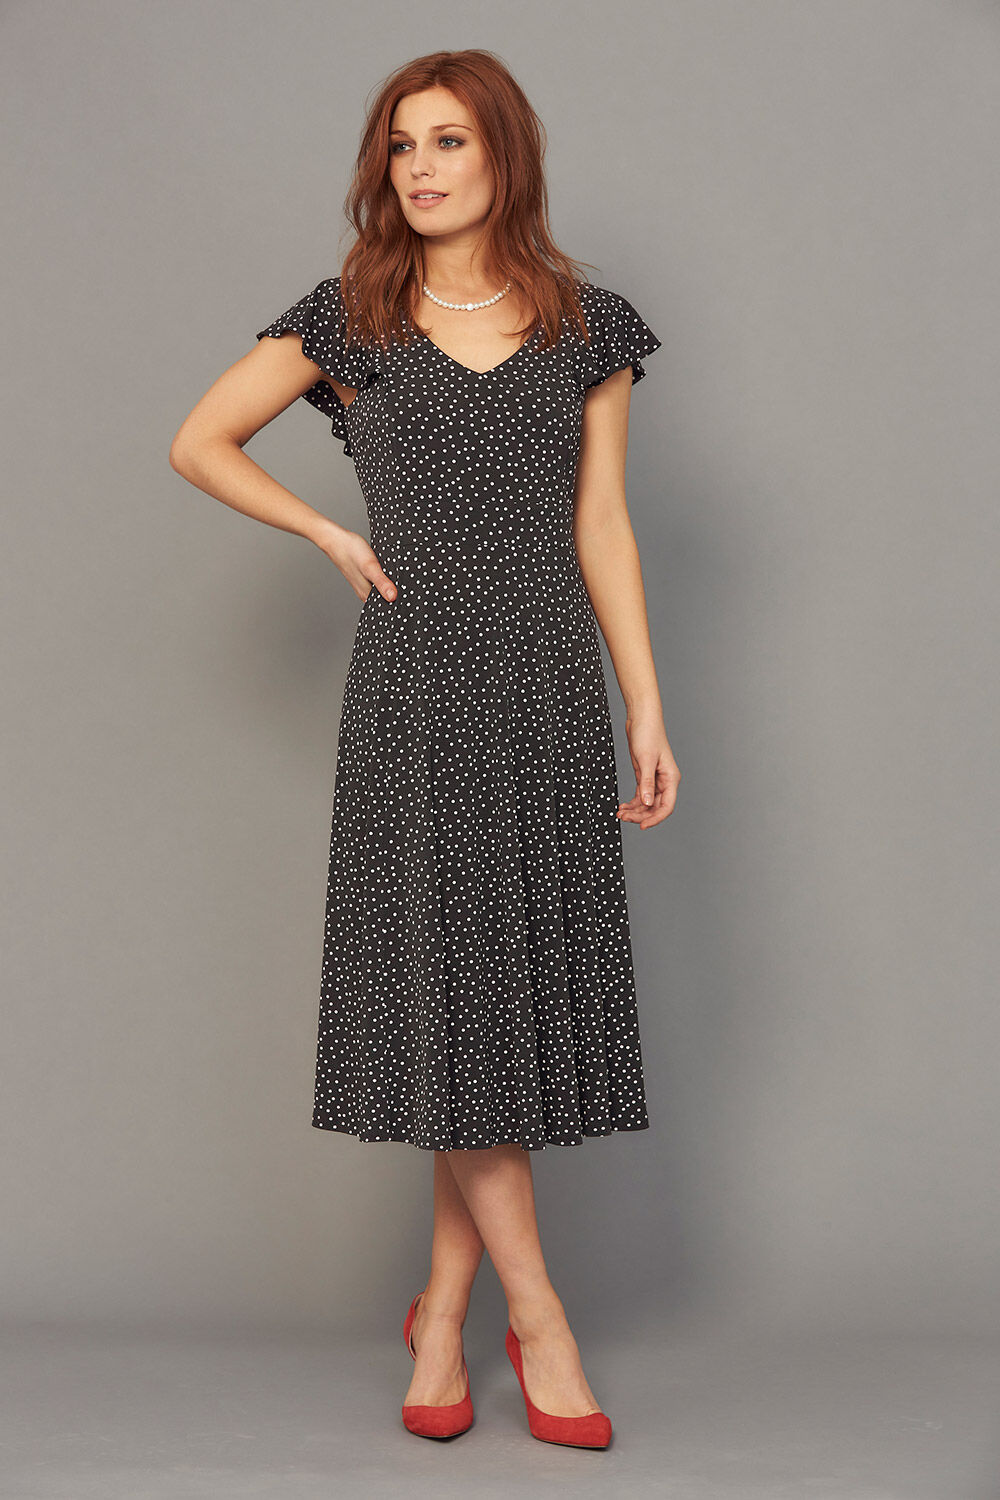 Bon marche summer dresses